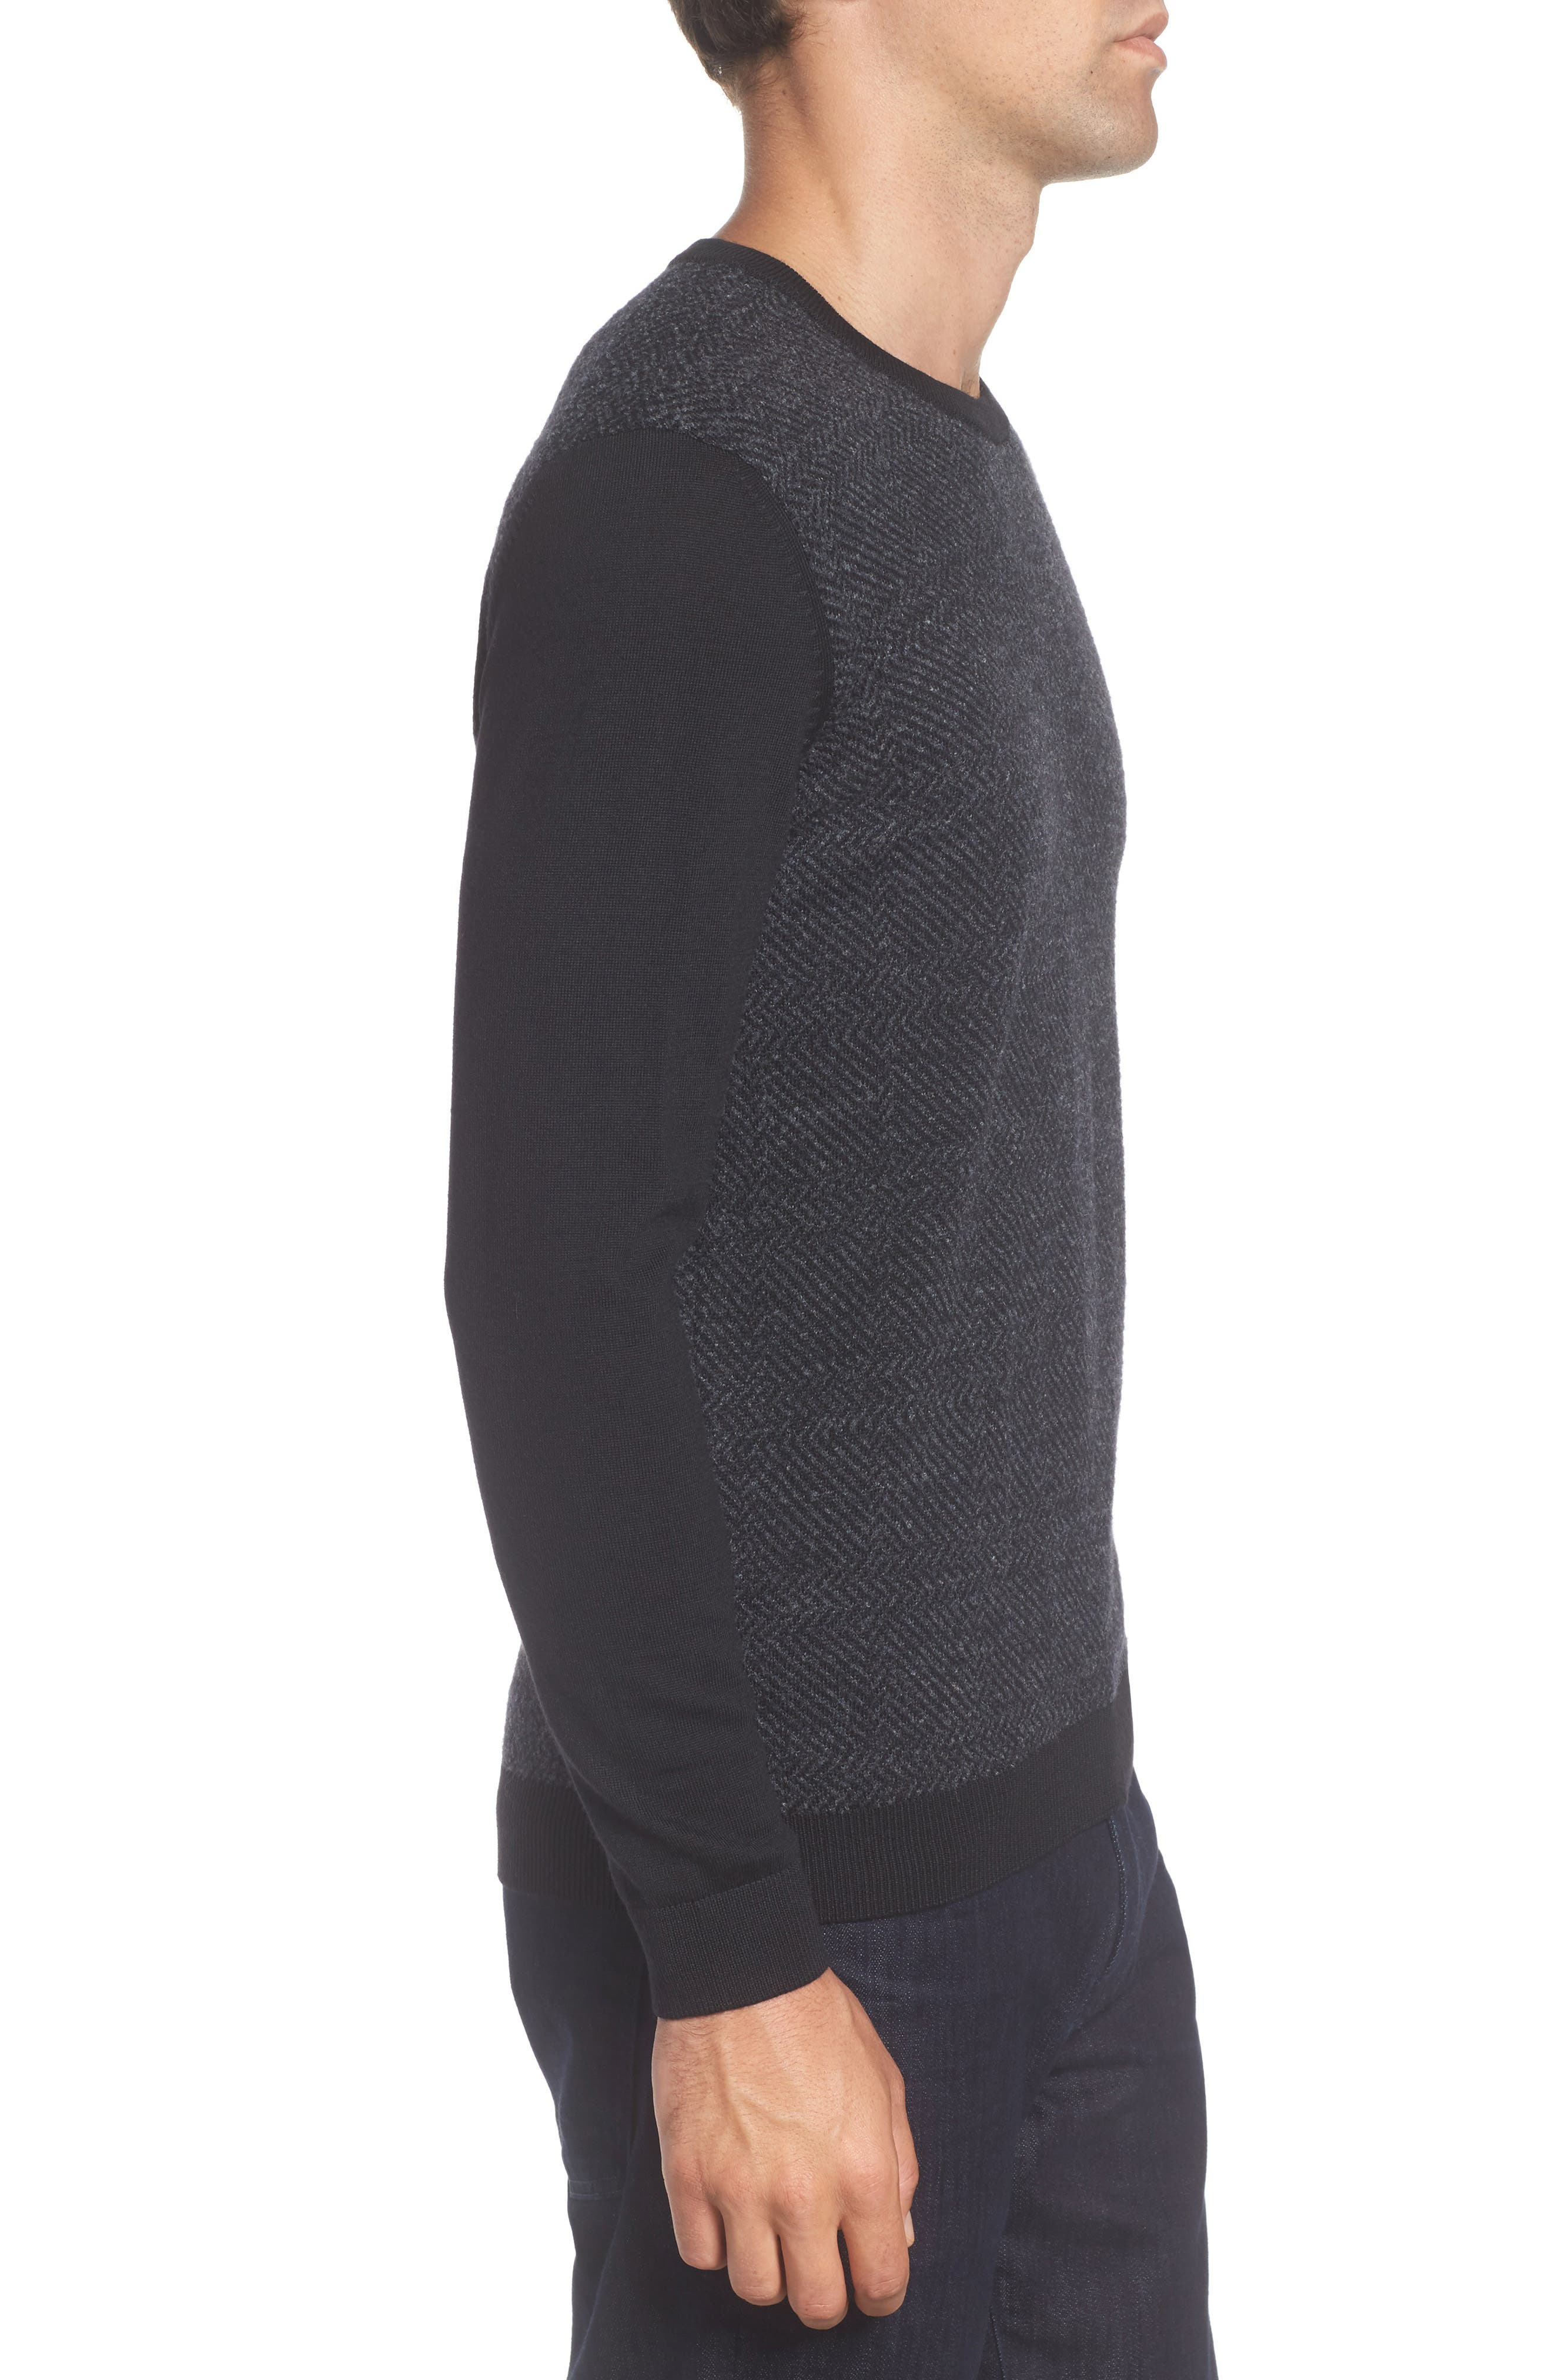 Notto Wool Blend Sweater,                             Alternate thumbnail 3, color,                             061